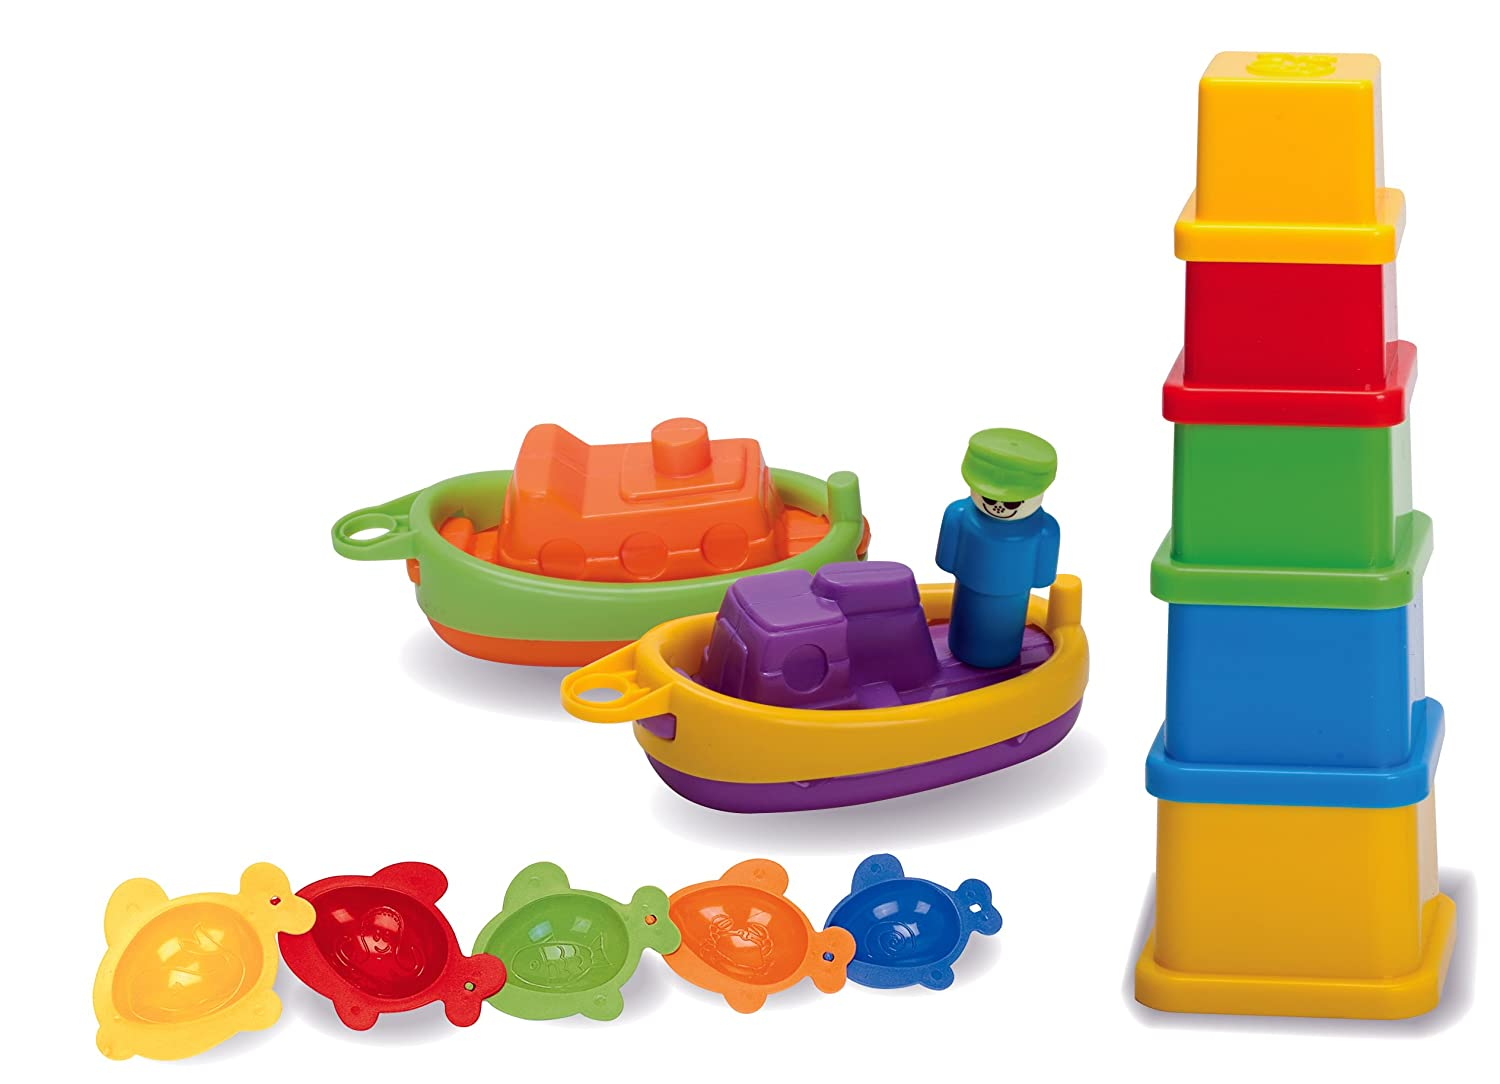 Fun Time Toys : Baby toddler fun bath time toy play set boats months